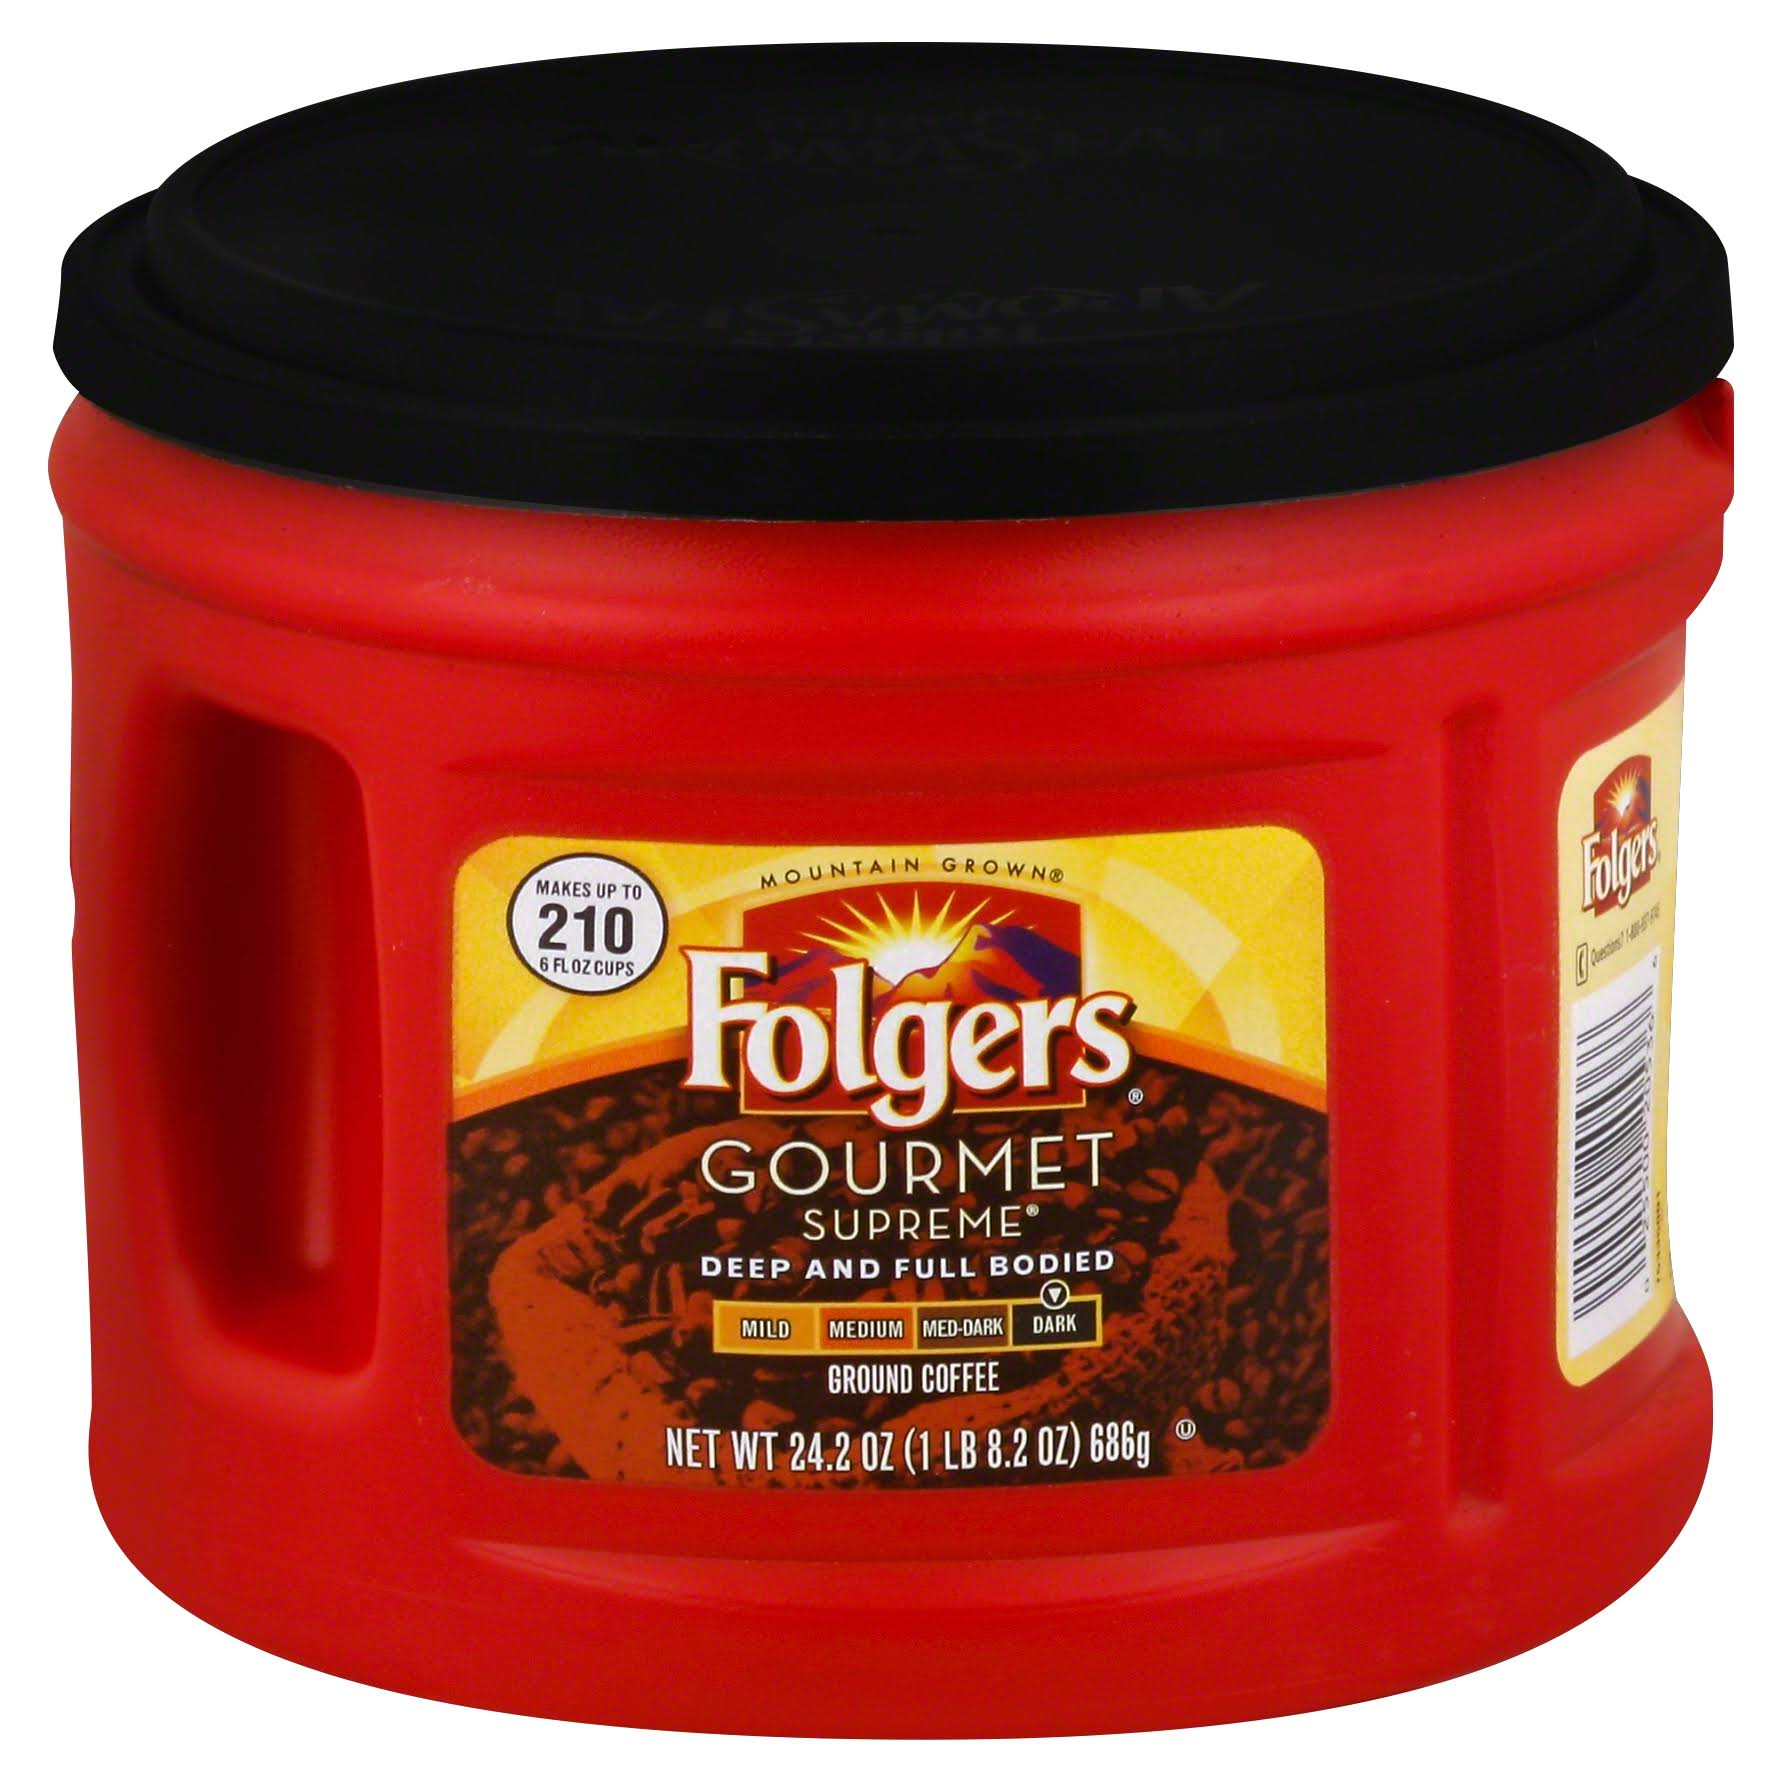 Folgers Gourmet Supreme Dark Ground Coffee - 686g